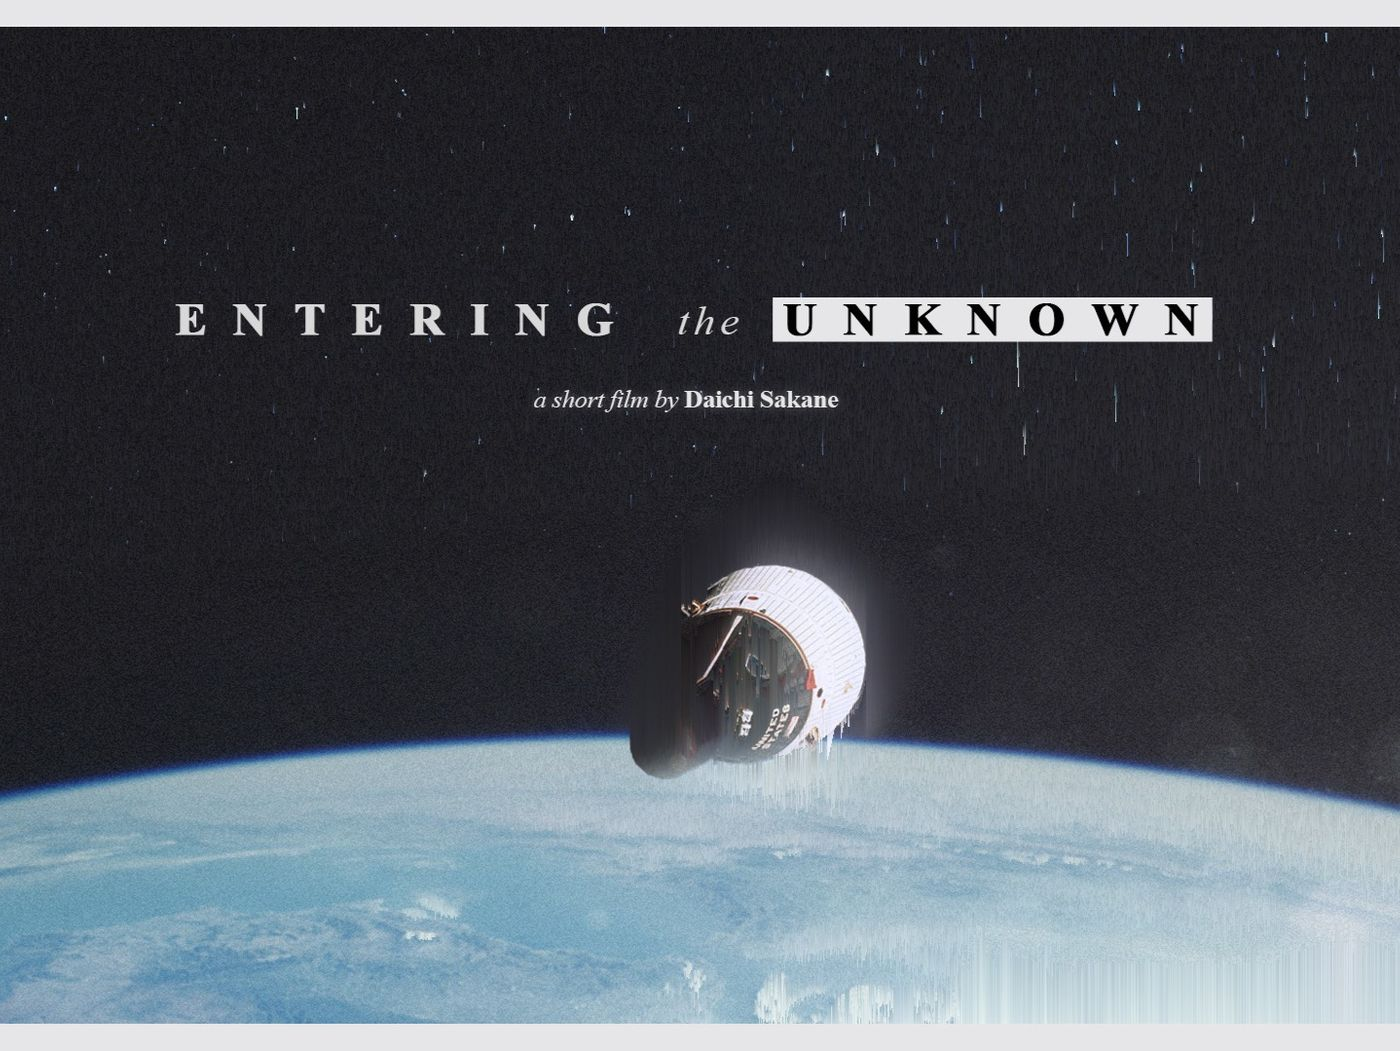 Entering the Unknown